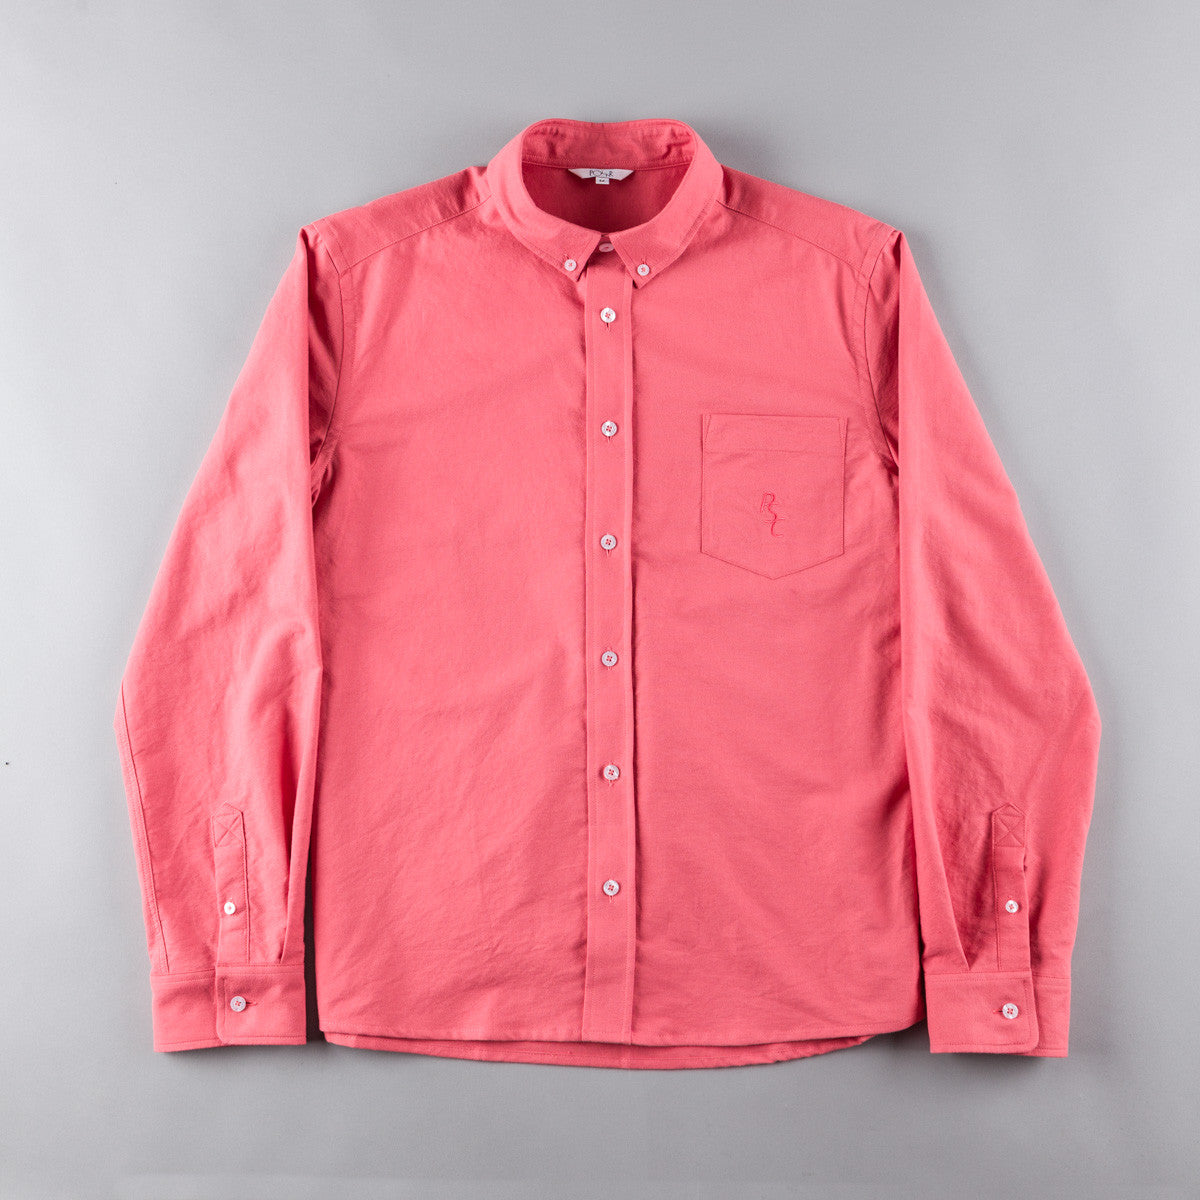 Polar PSC Long Sleeve Shirt